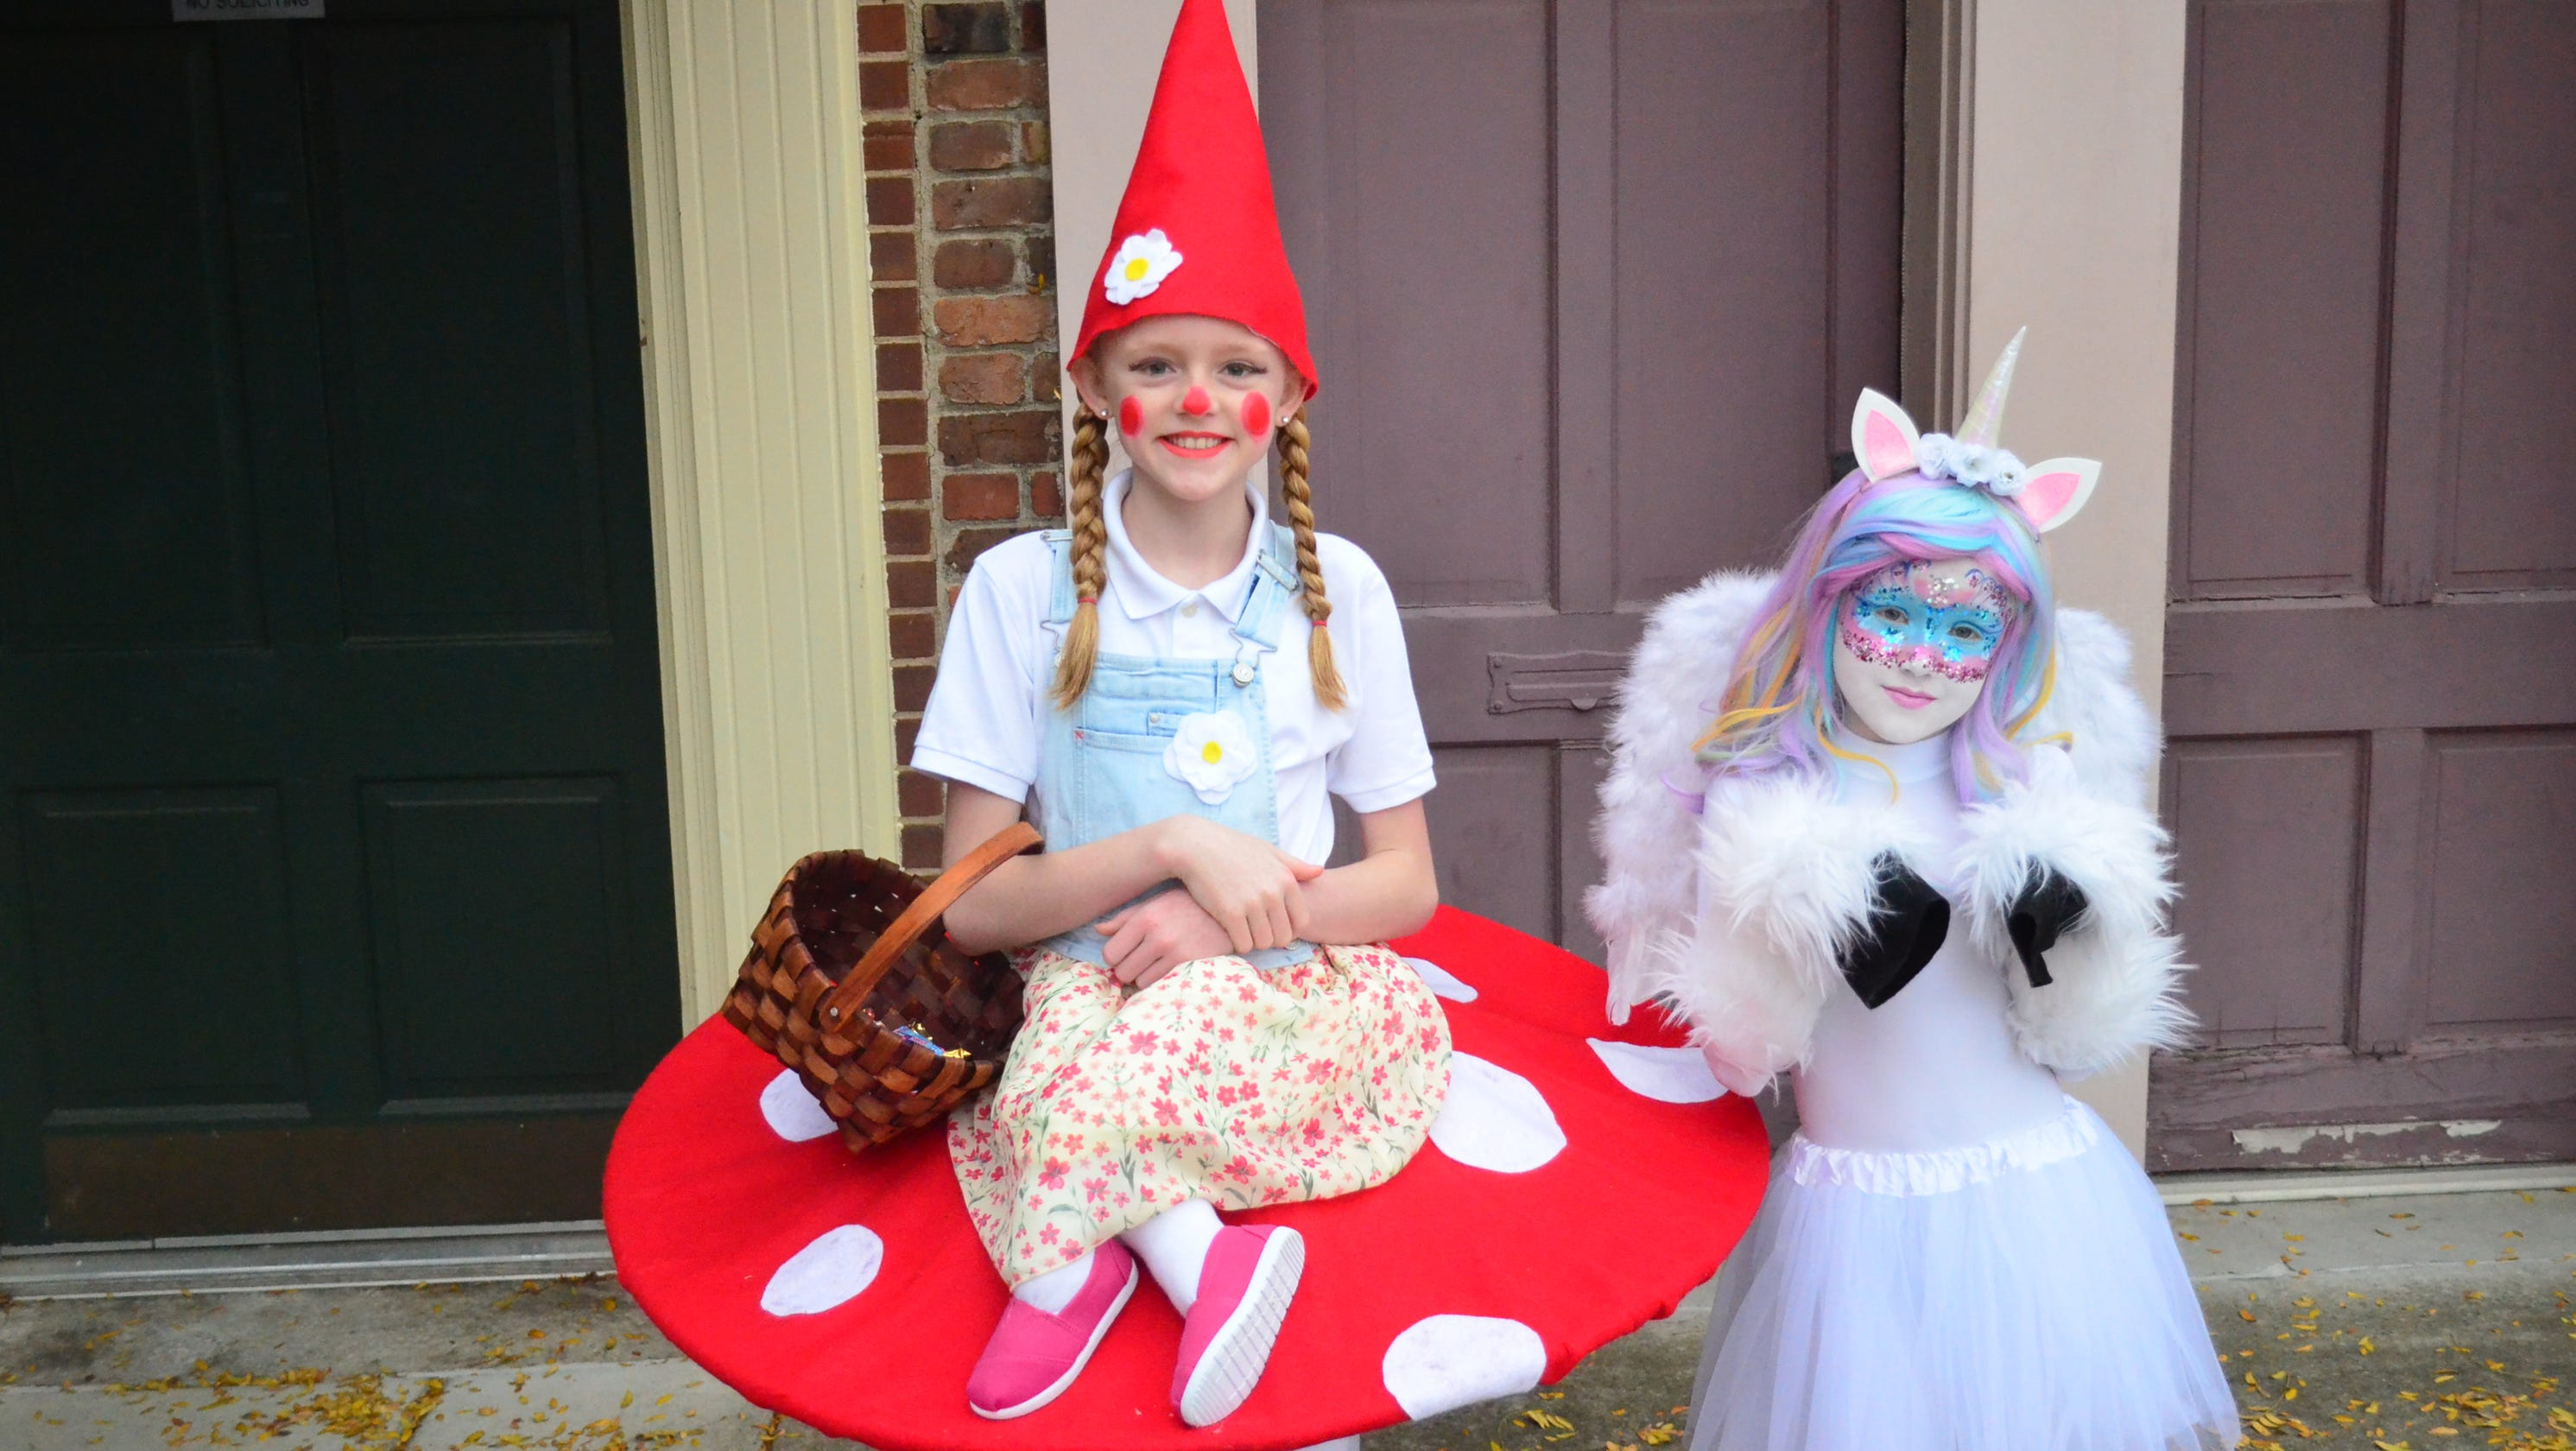 Halloween is coming. Here are some fun, family-friendly events in Robertson, Sumner counties